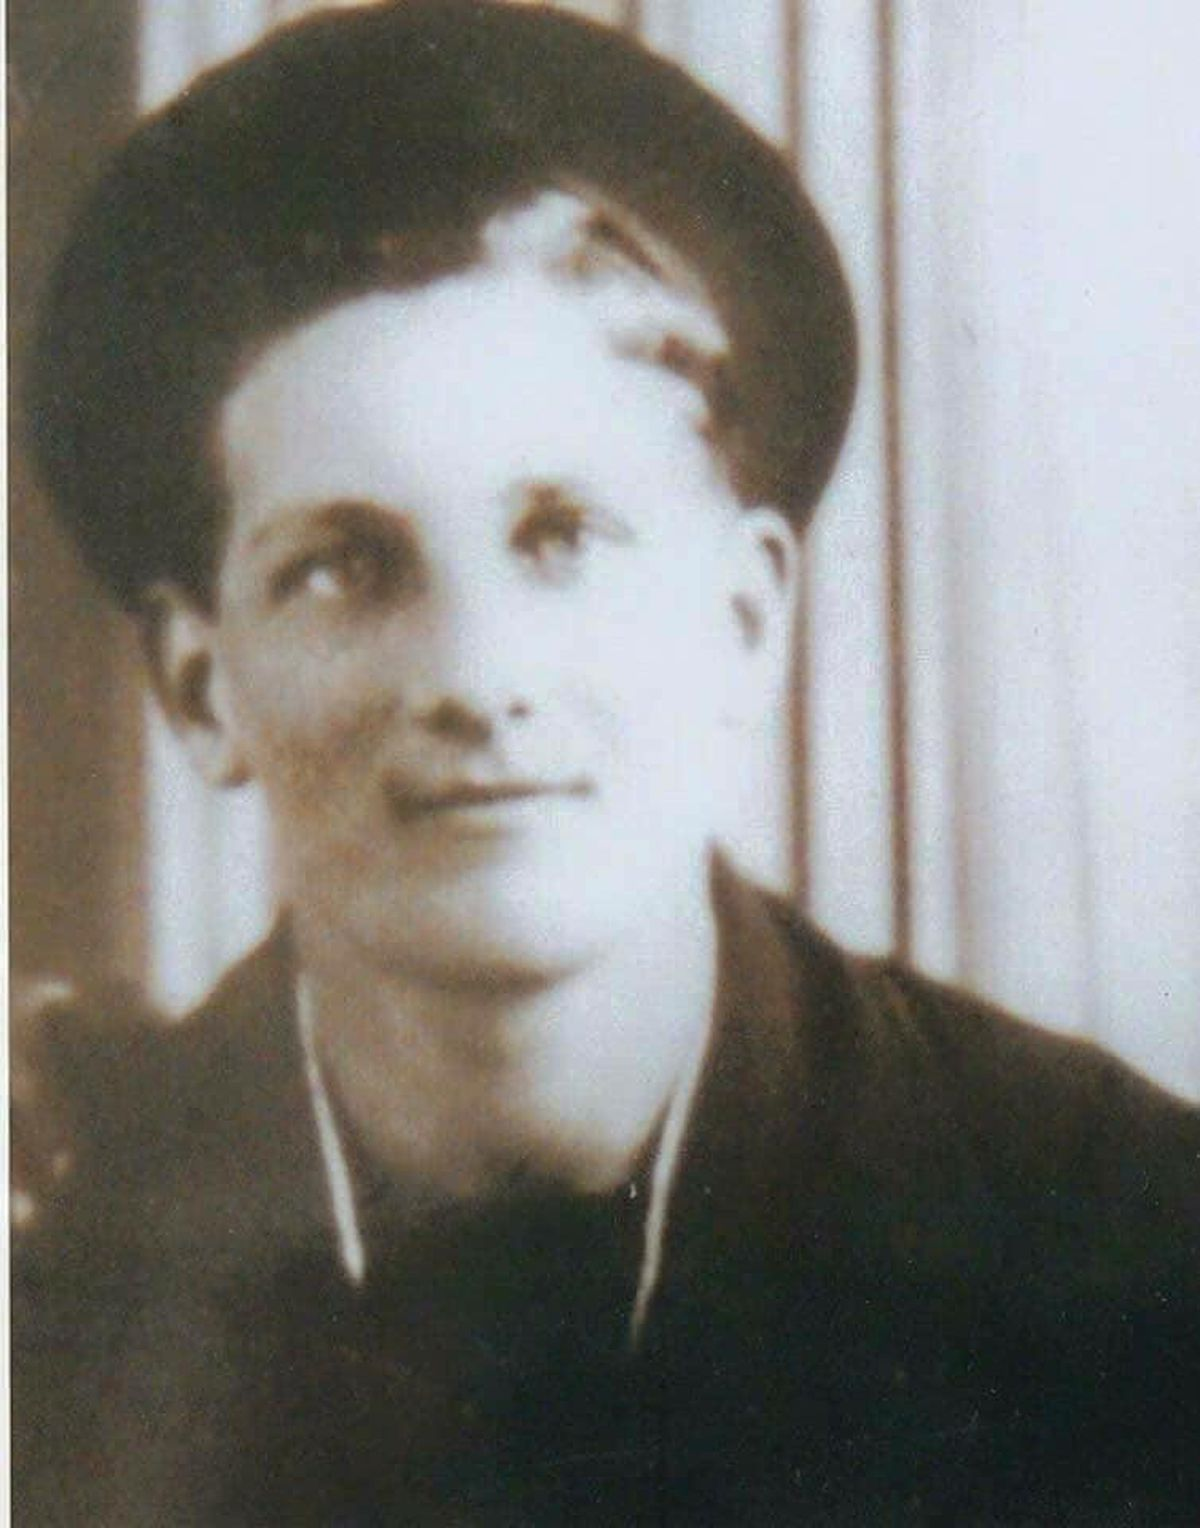 Harry, pictured during the Second World War